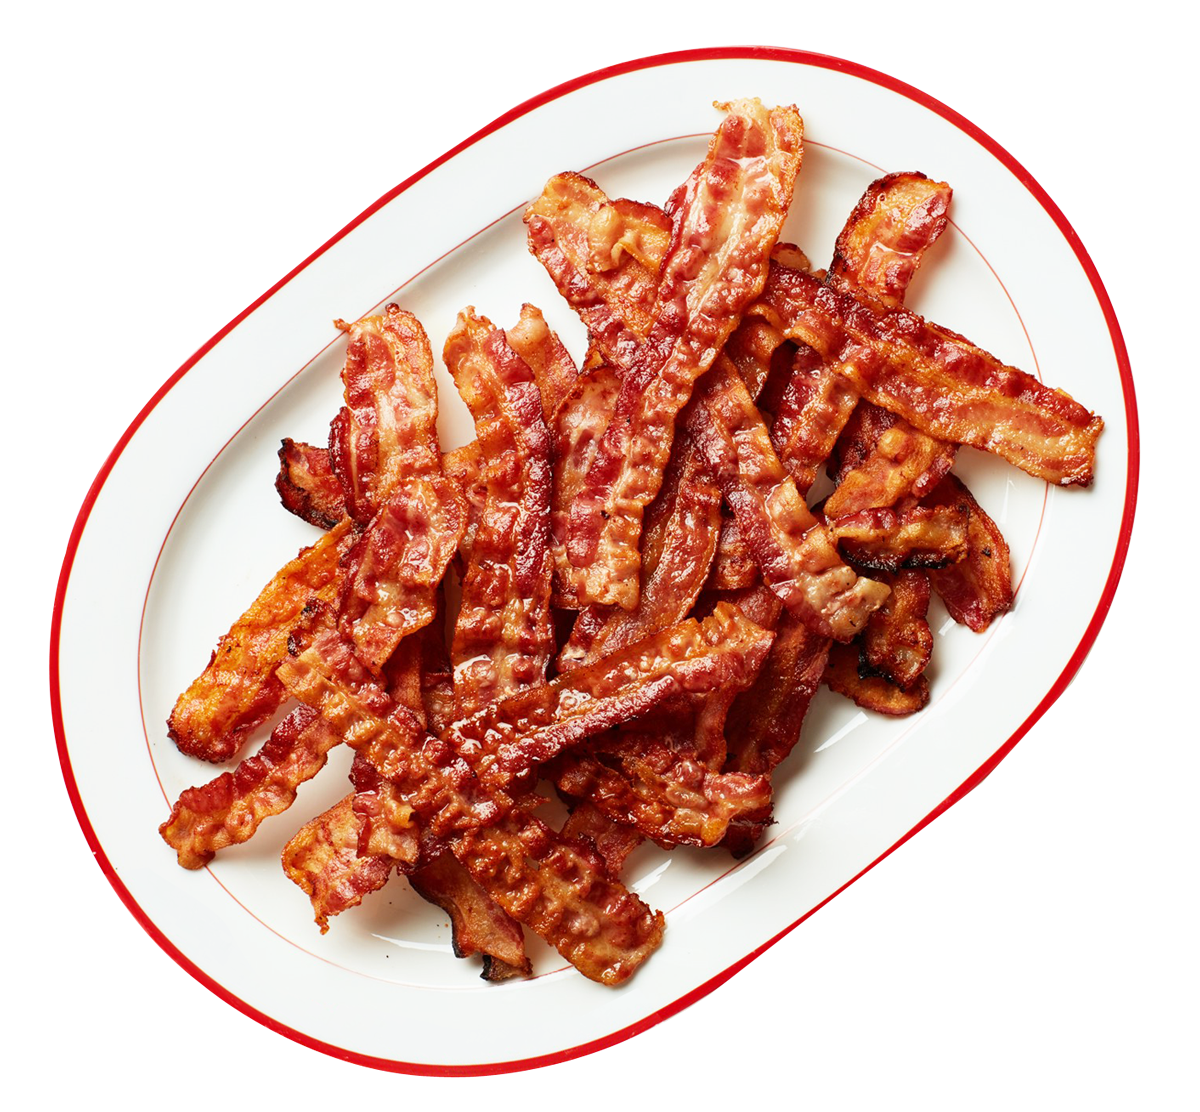 Bacon PNG - 7793